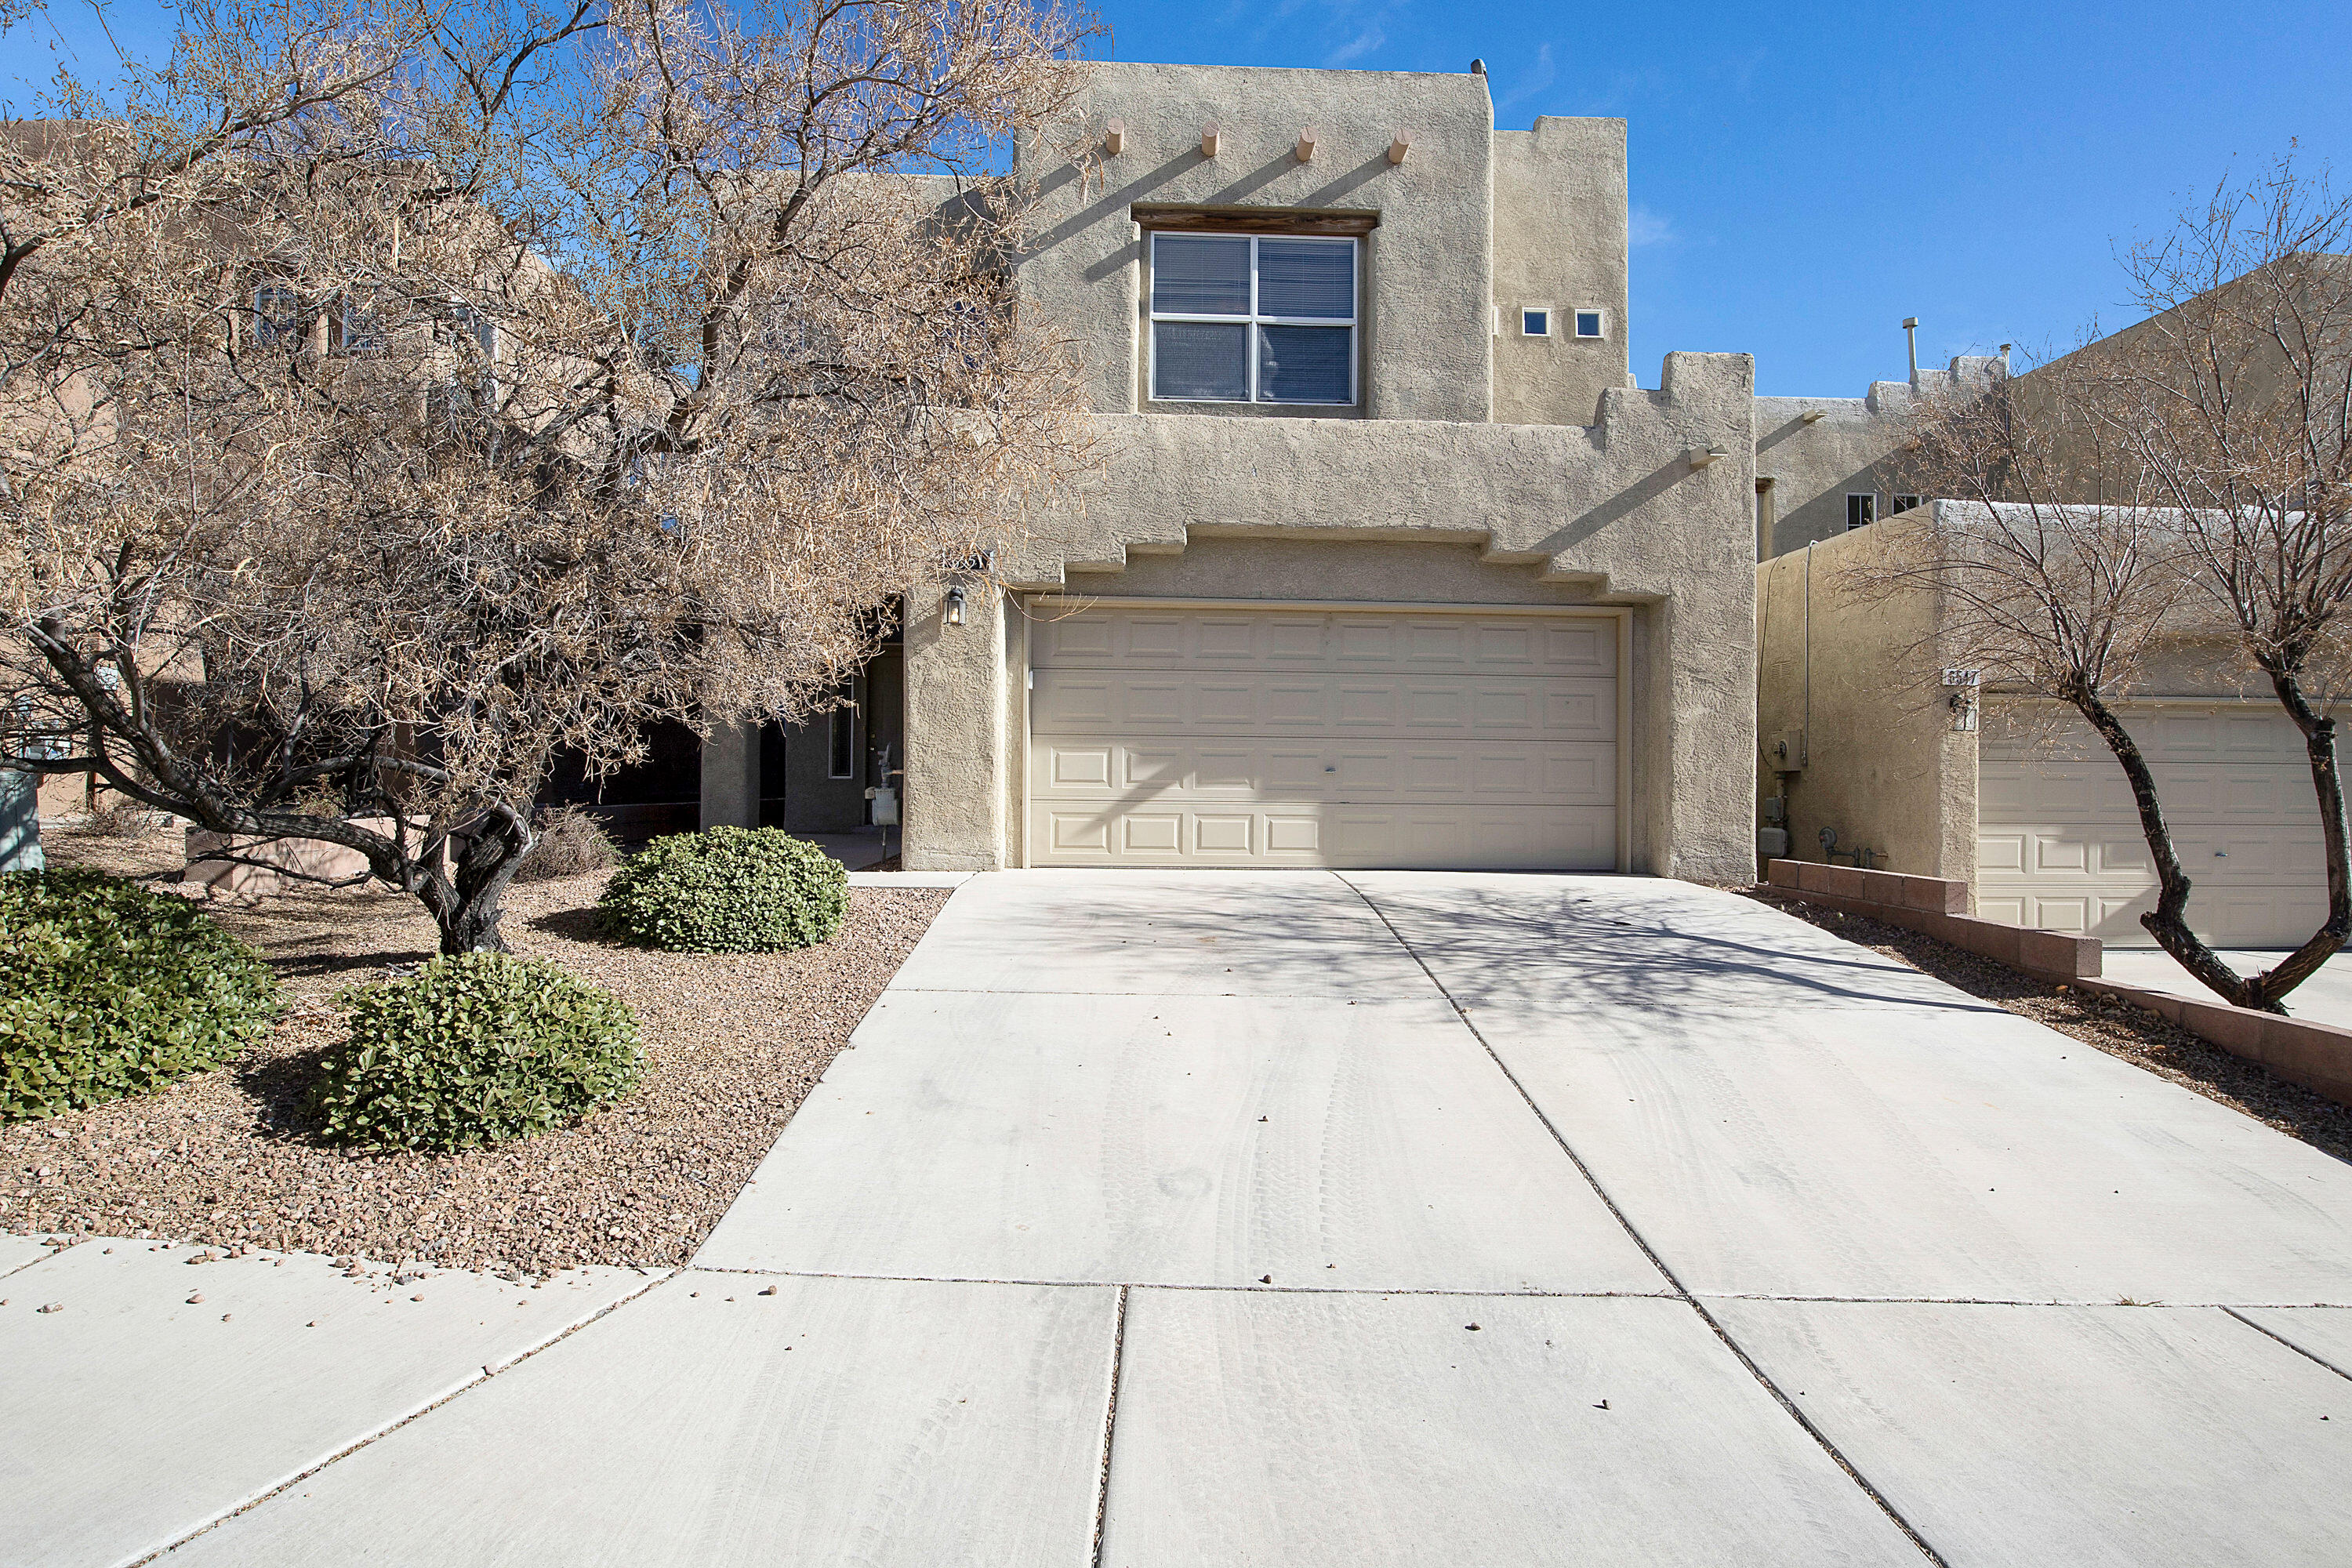 This is your opportunity to own a great townhome in Ventana Ranch!! The home features an great floorplan, high ceilings, plenty of natural light, and room for everyone to enjoy! The location is a winner, with access to shopping, dining, grocery stores, and Paseo del Norte a couple of minutes away it doesn't get much better. Come take a look at your next home!